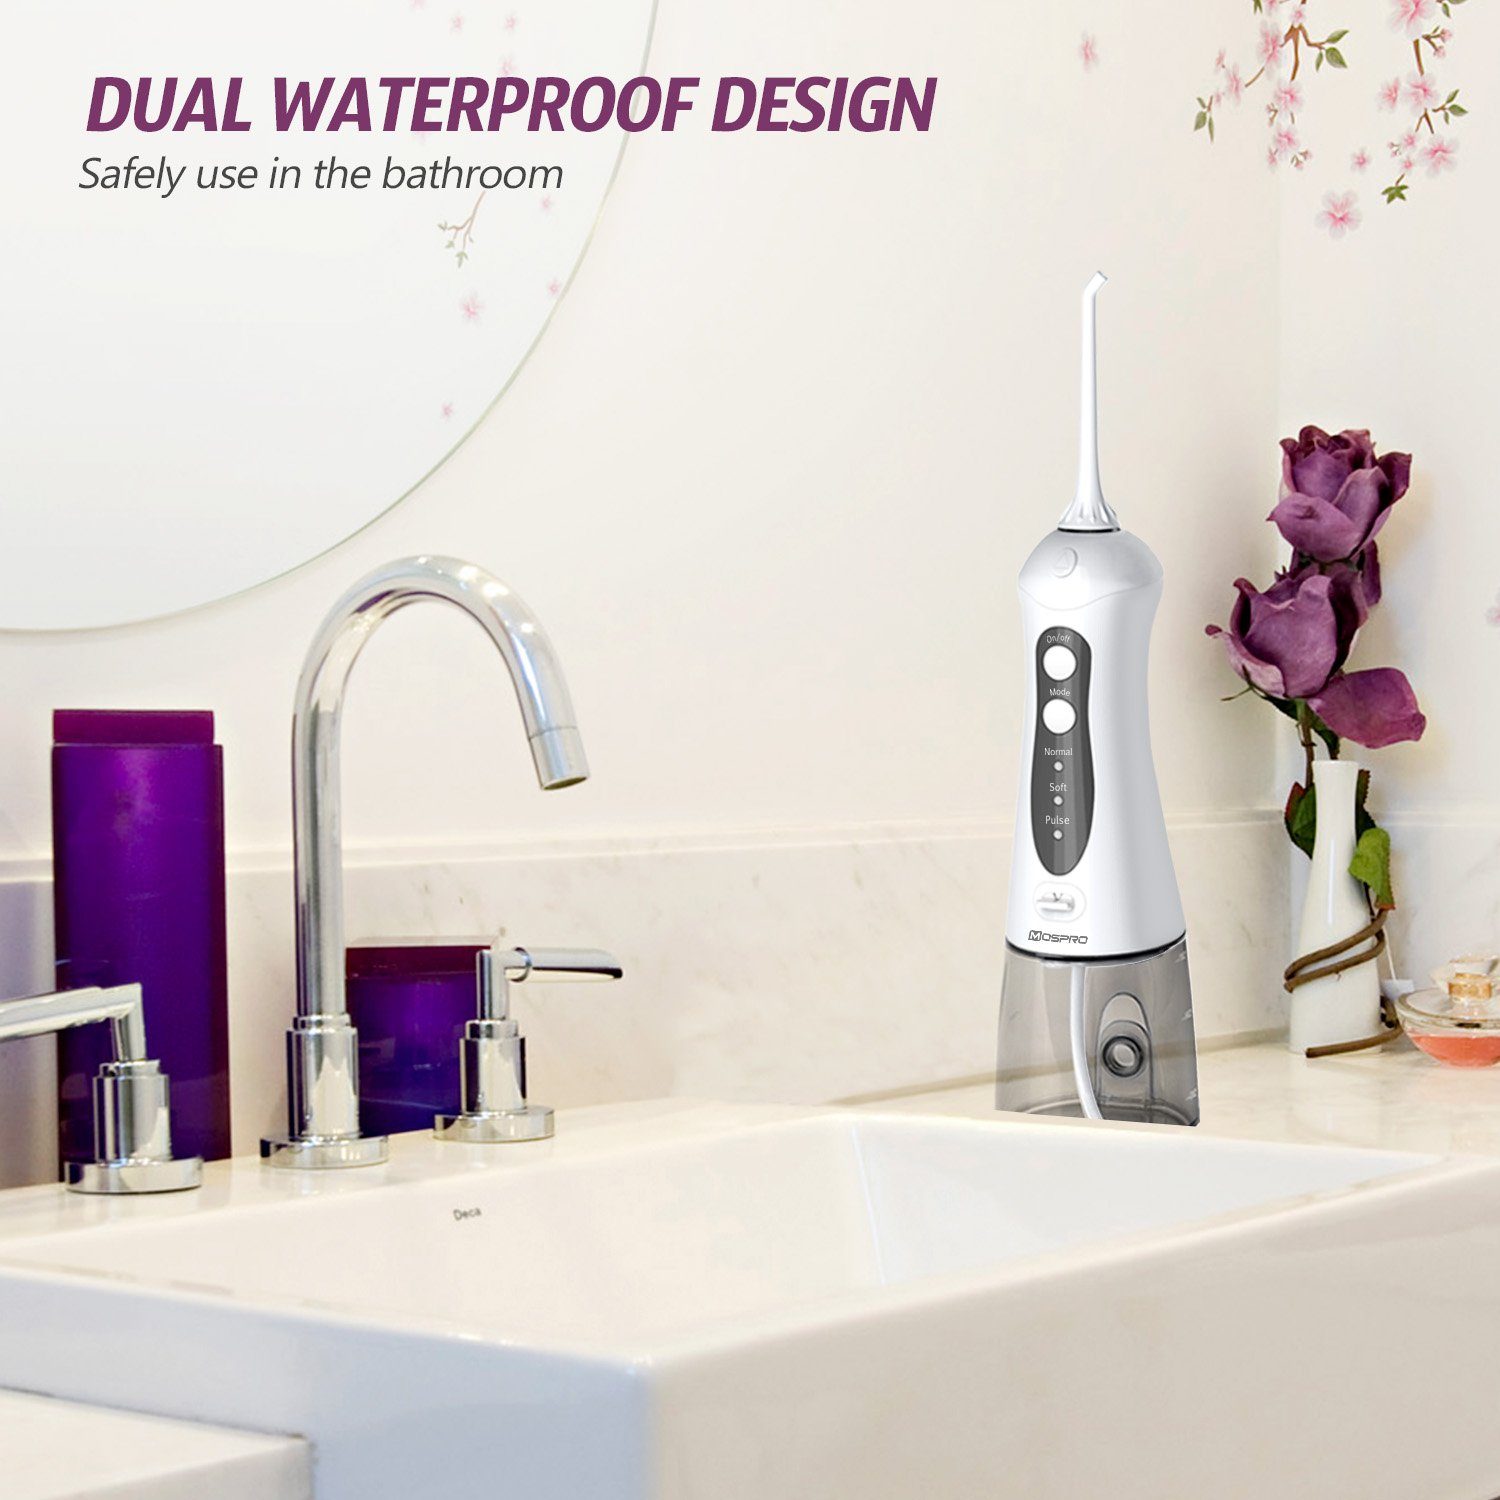 Water Flosser Professional Cordless Dental Oral Irrigator - Portable and Rechargeable IPX7 Waterproof 3 Modes Water Flossing with Cleanable Water Tank for Home and Travel, Braces & Bridges Care by MOSPRO (Image #5)